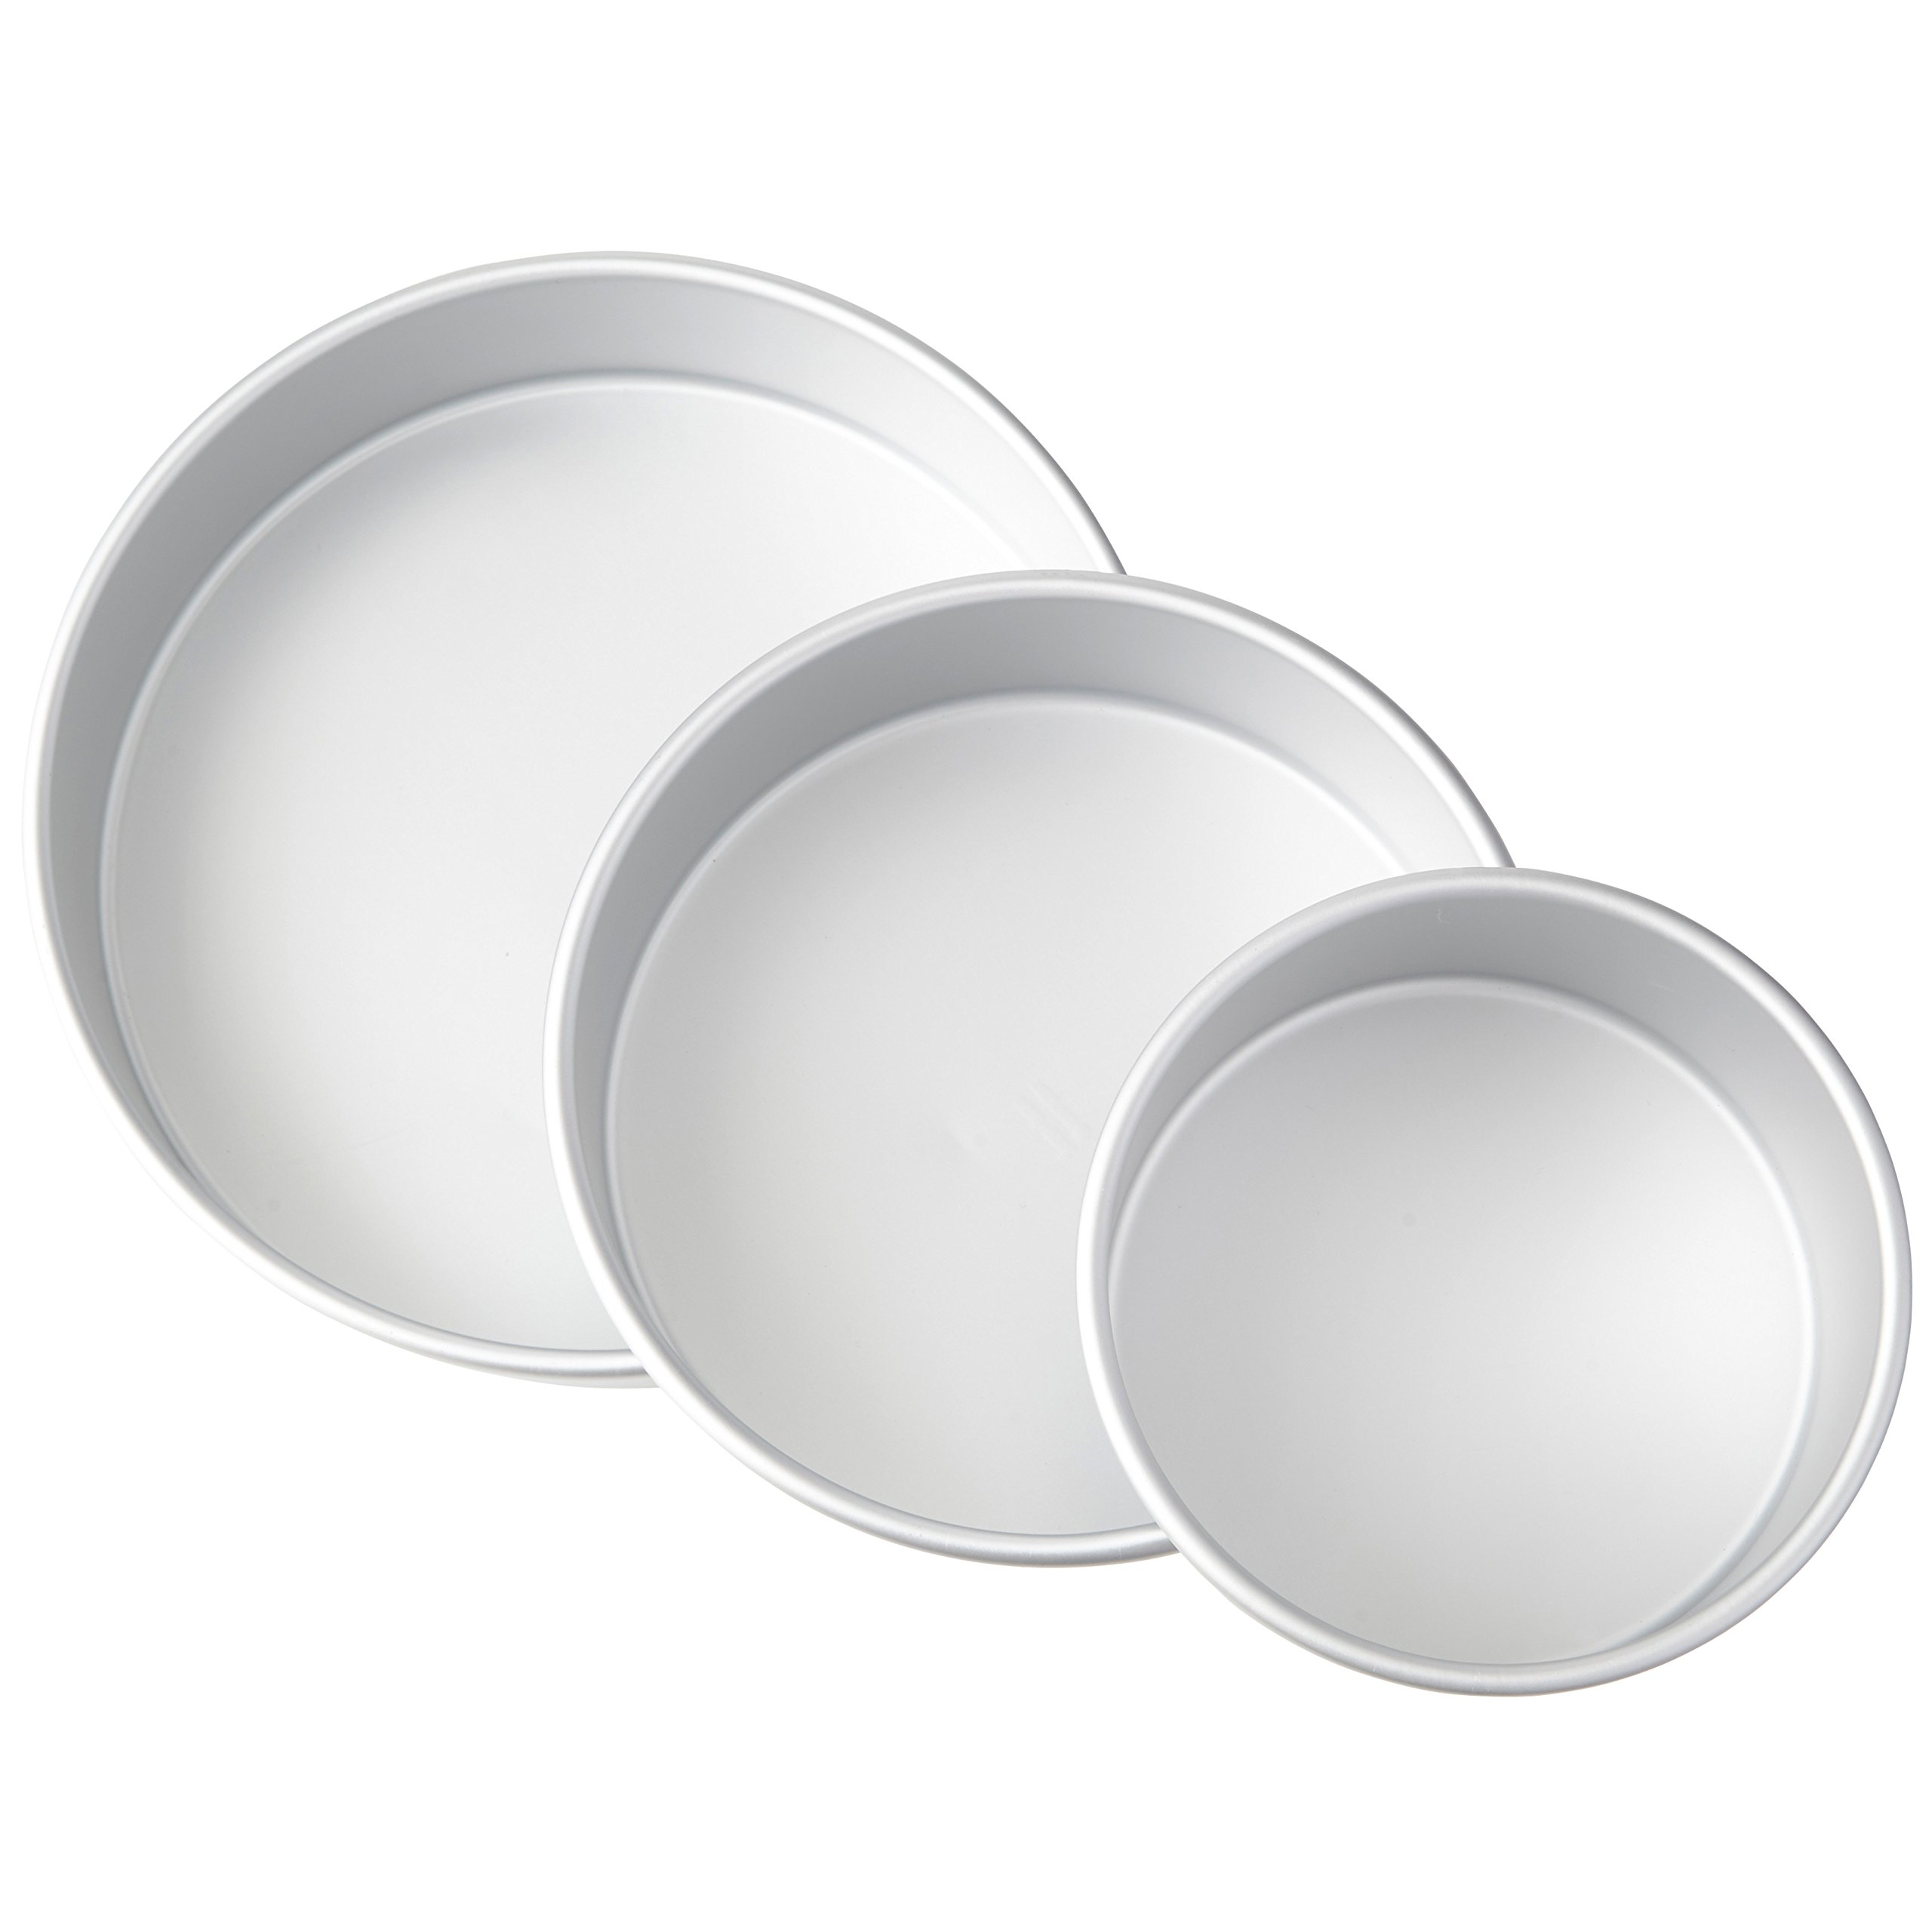 Wilton So You've Always Wanted to Make a Tiered Cake Pan Set by Wilton